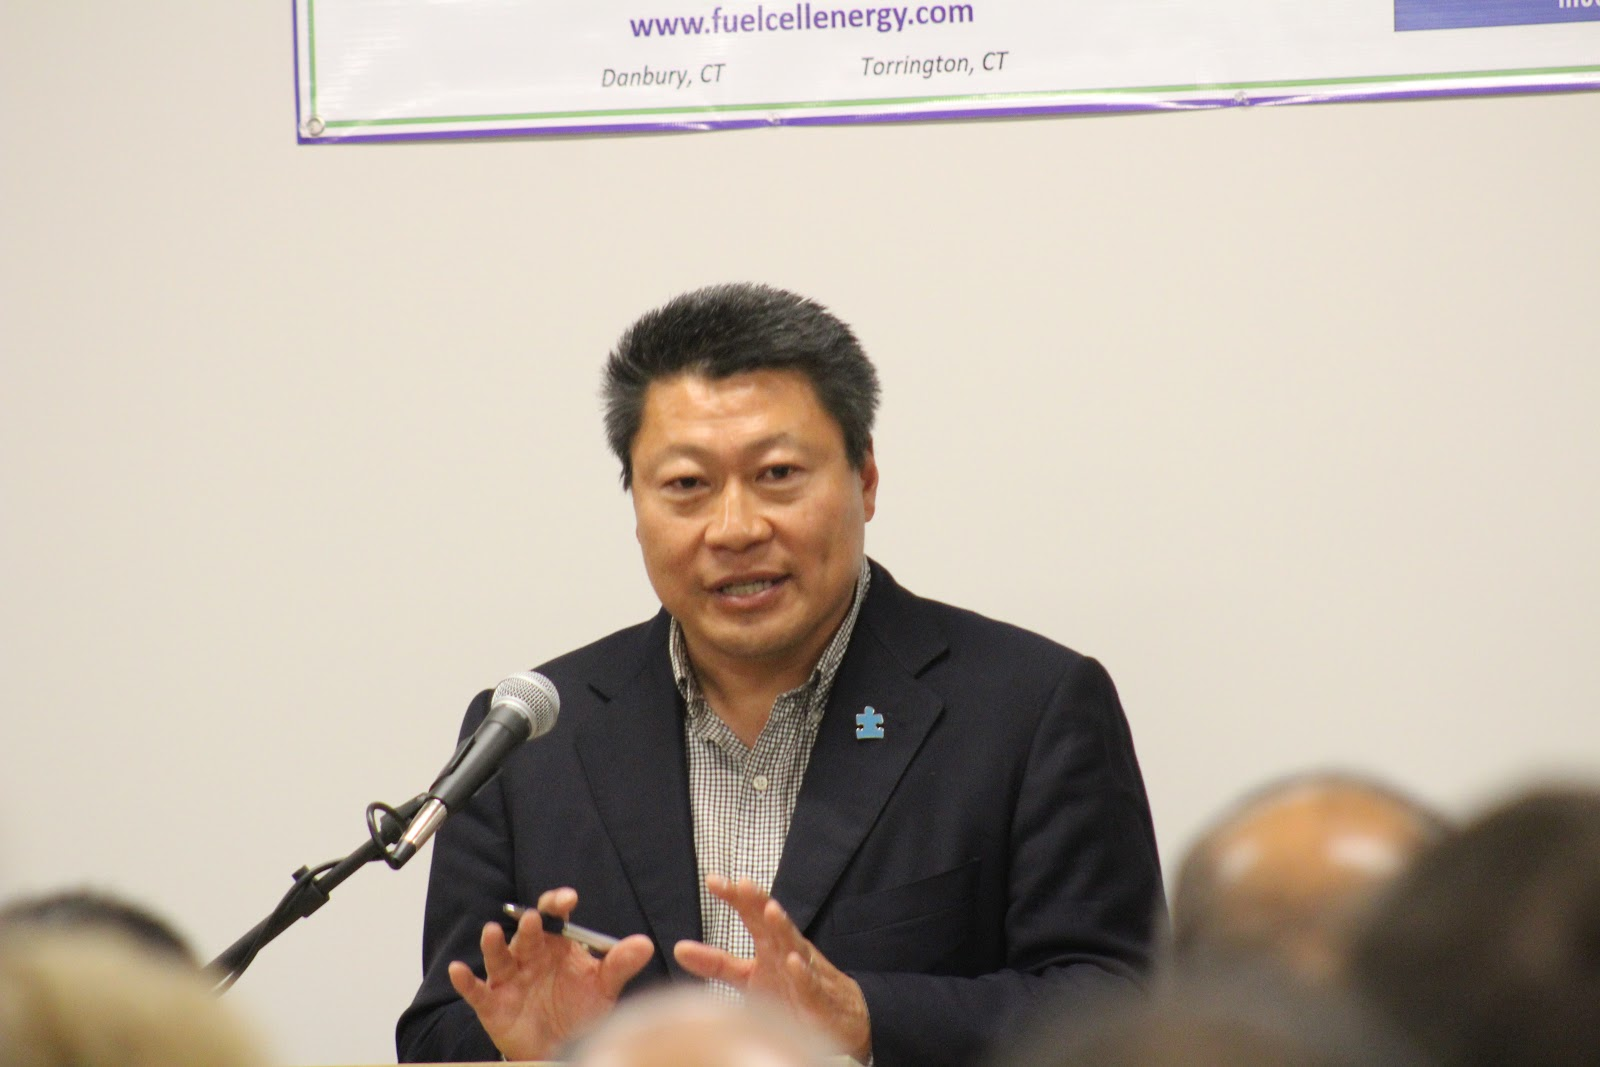 Fuel Cell Image 2 - Tony Hwang